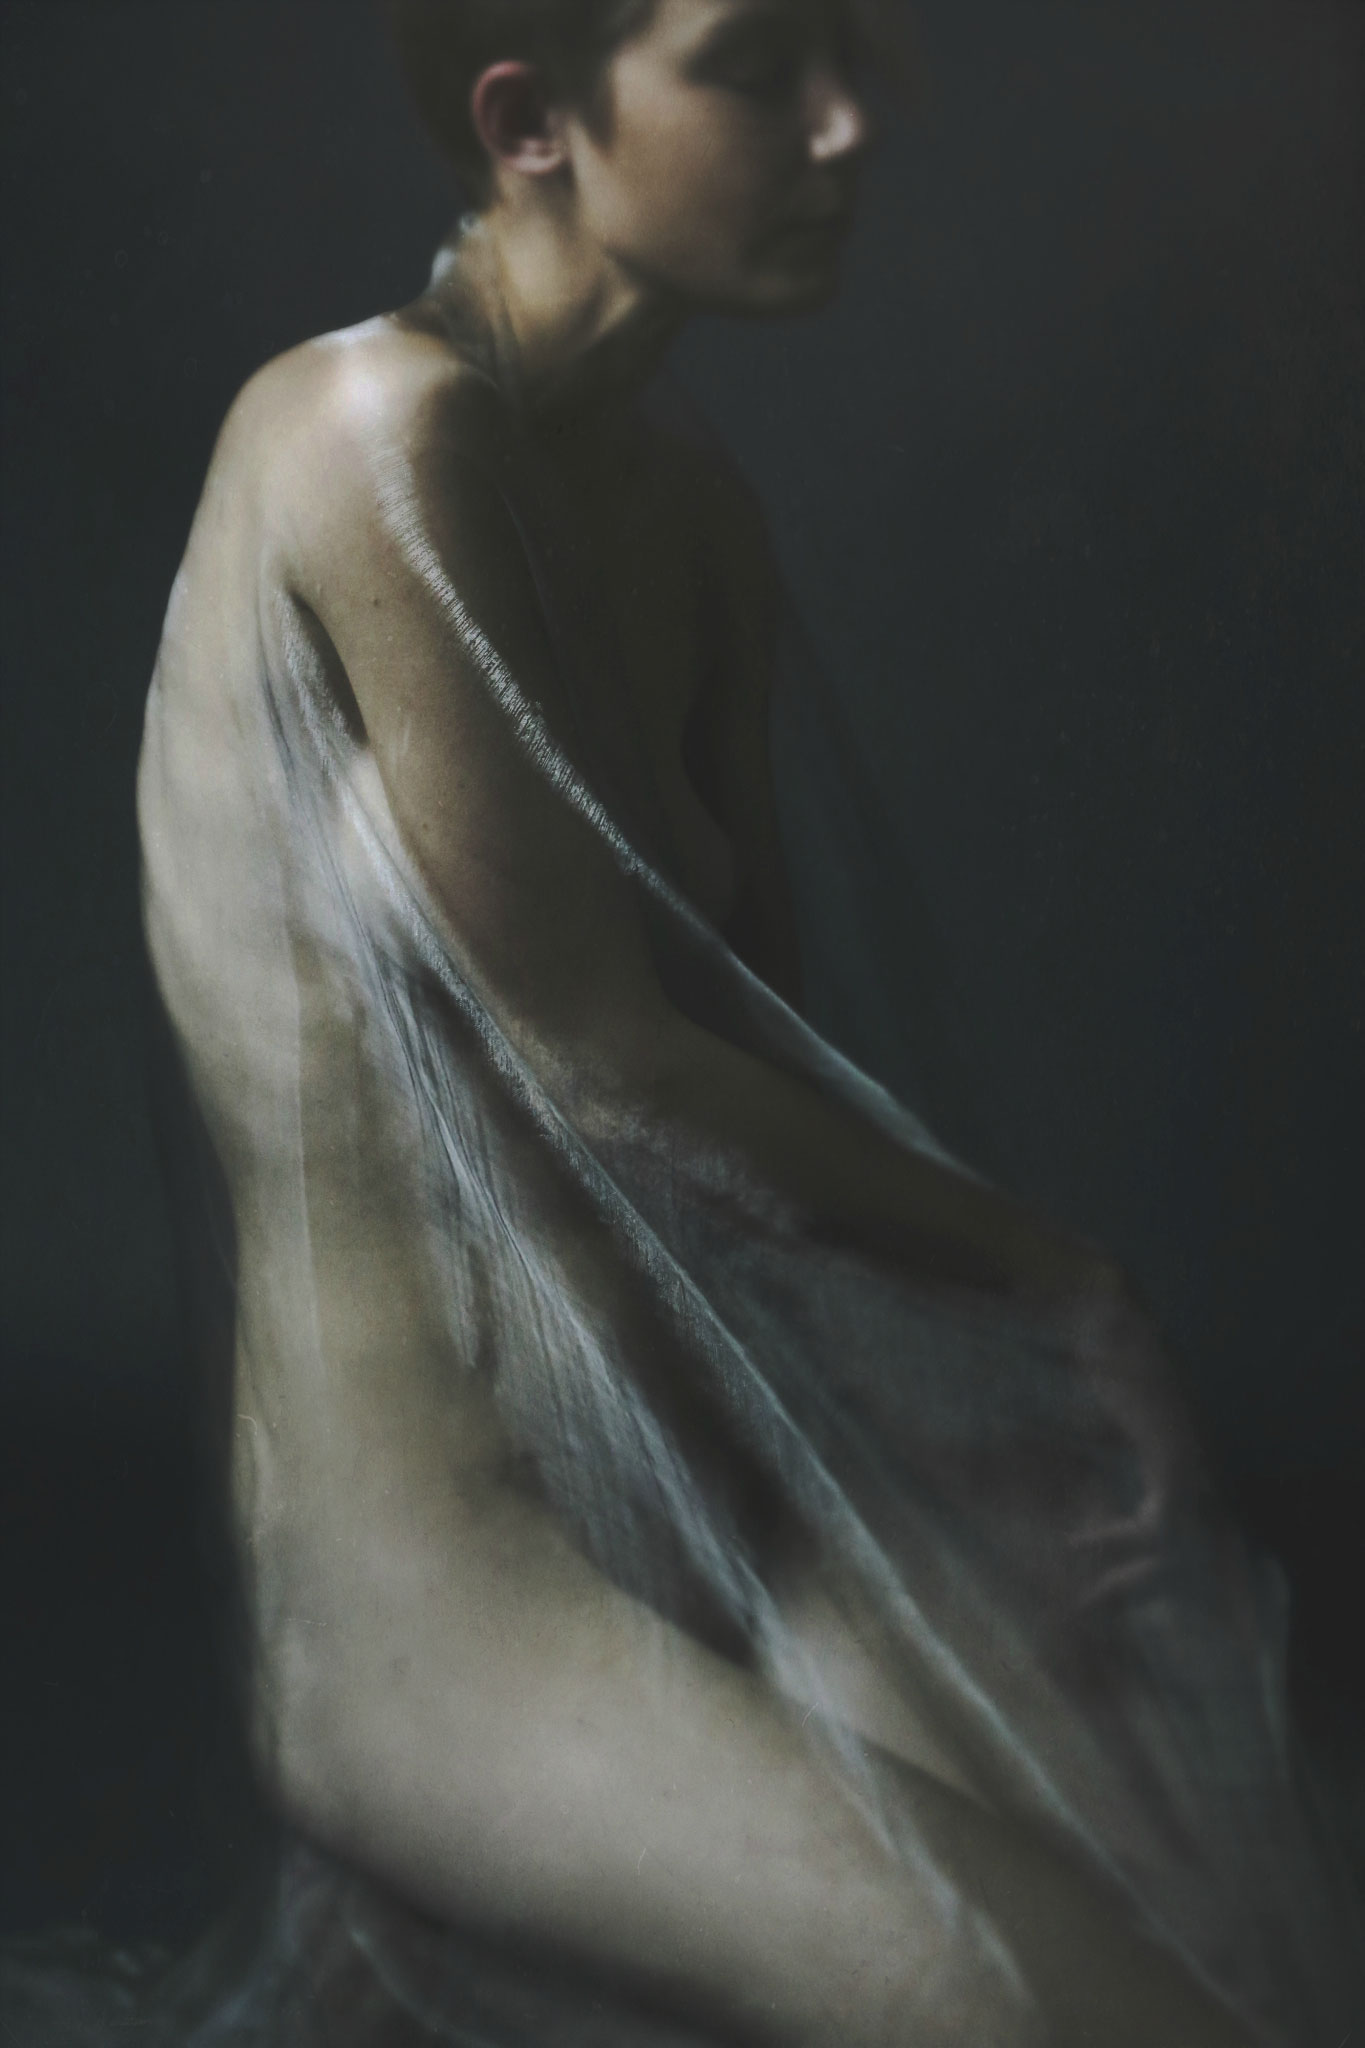 Josephine_Cardin_article_05